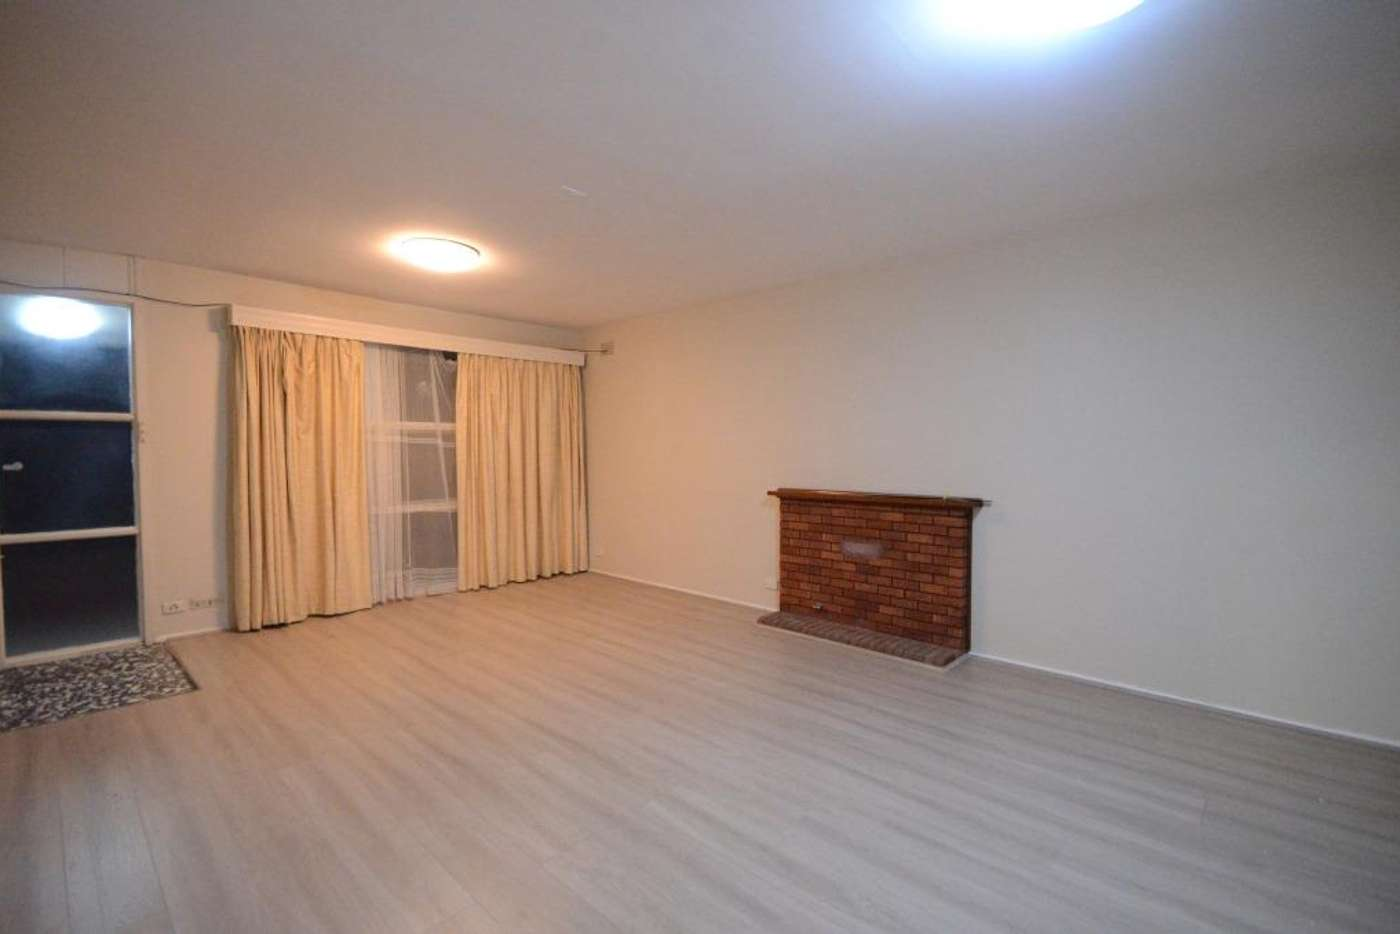 Sixth view of Homely house listing, 29 Mountview Ave, Beverly Hills NSW 2209